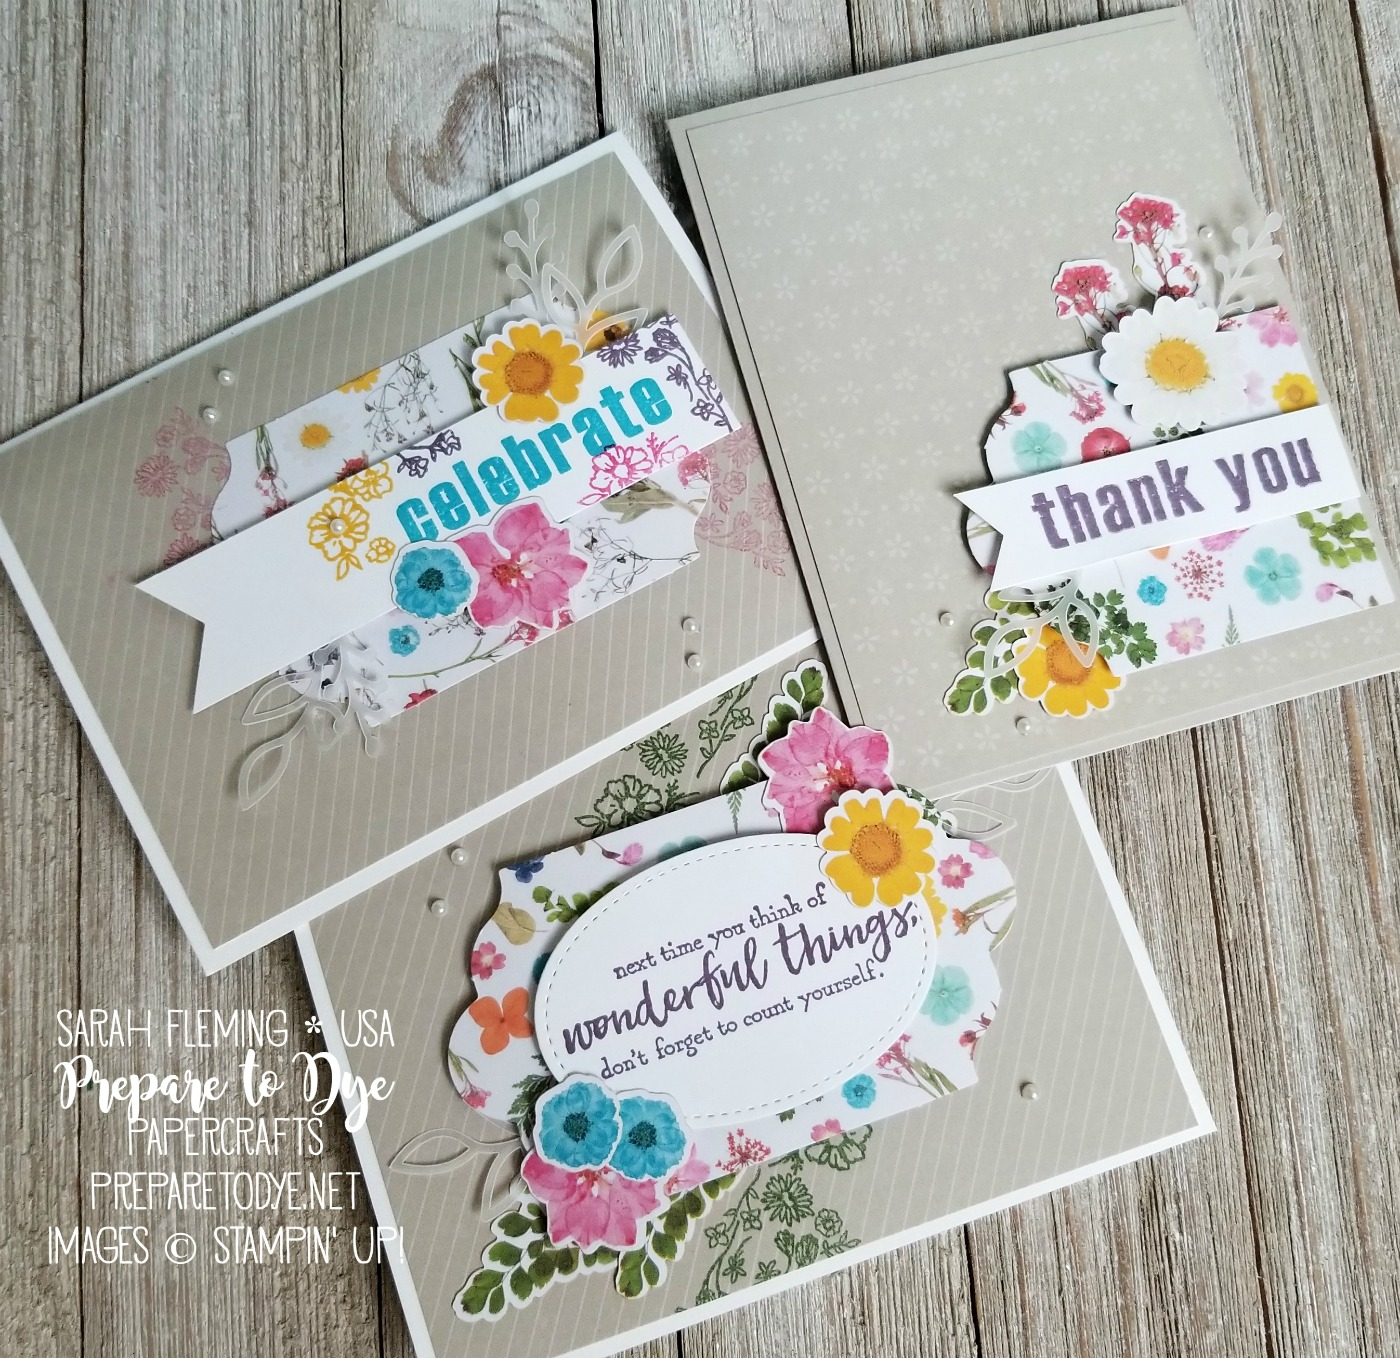 Stampin' Up! Paper Pumpkin monthly subscription box February 2018 kit with Just Add Text - see blog post for alternate ideas for this kit - Sarah Fleming - Prepare to Dye Papercrafts